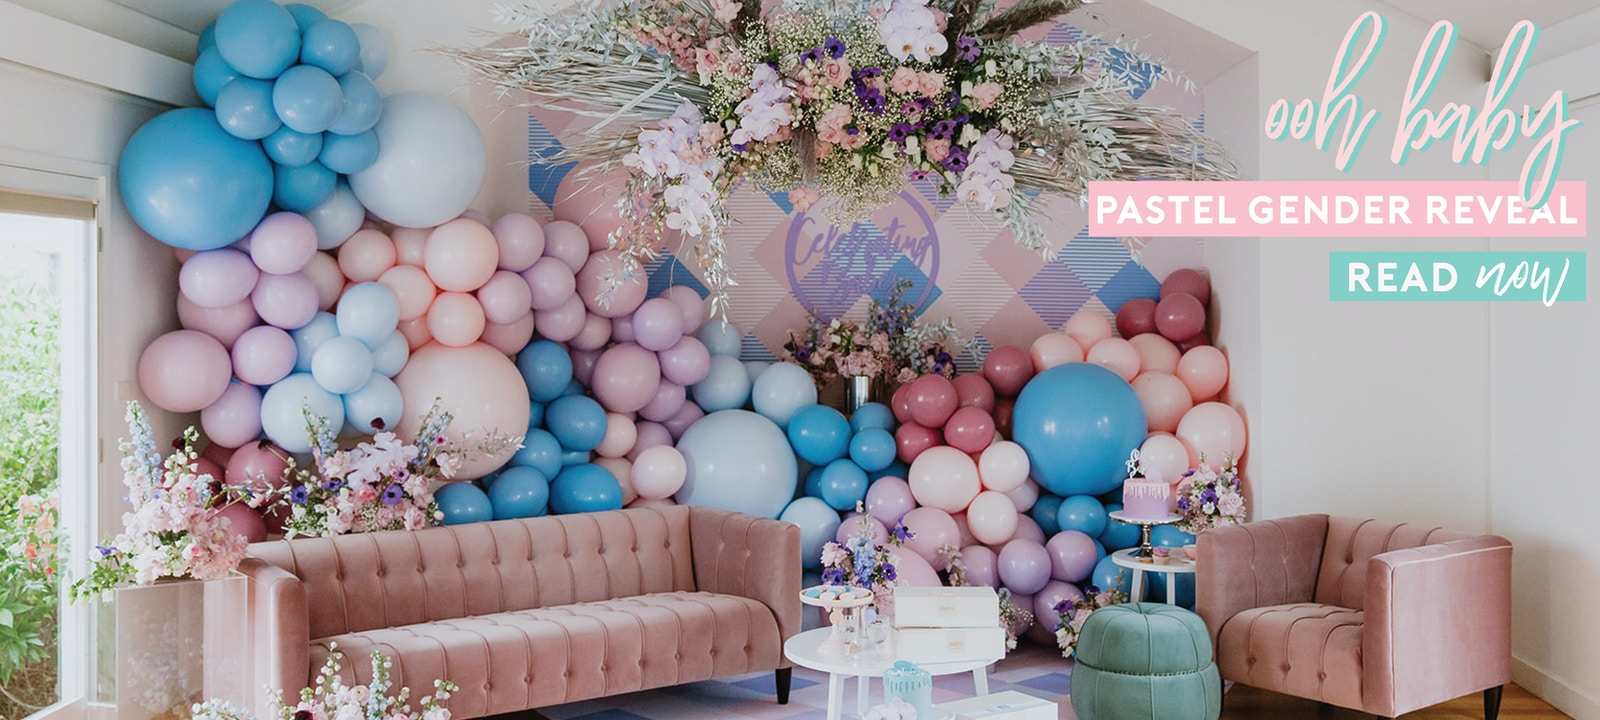 Party wedding and event hire furniture decorations in australia party wedding and event hire furniture decorations in australia lenzo junglespirit Gallery